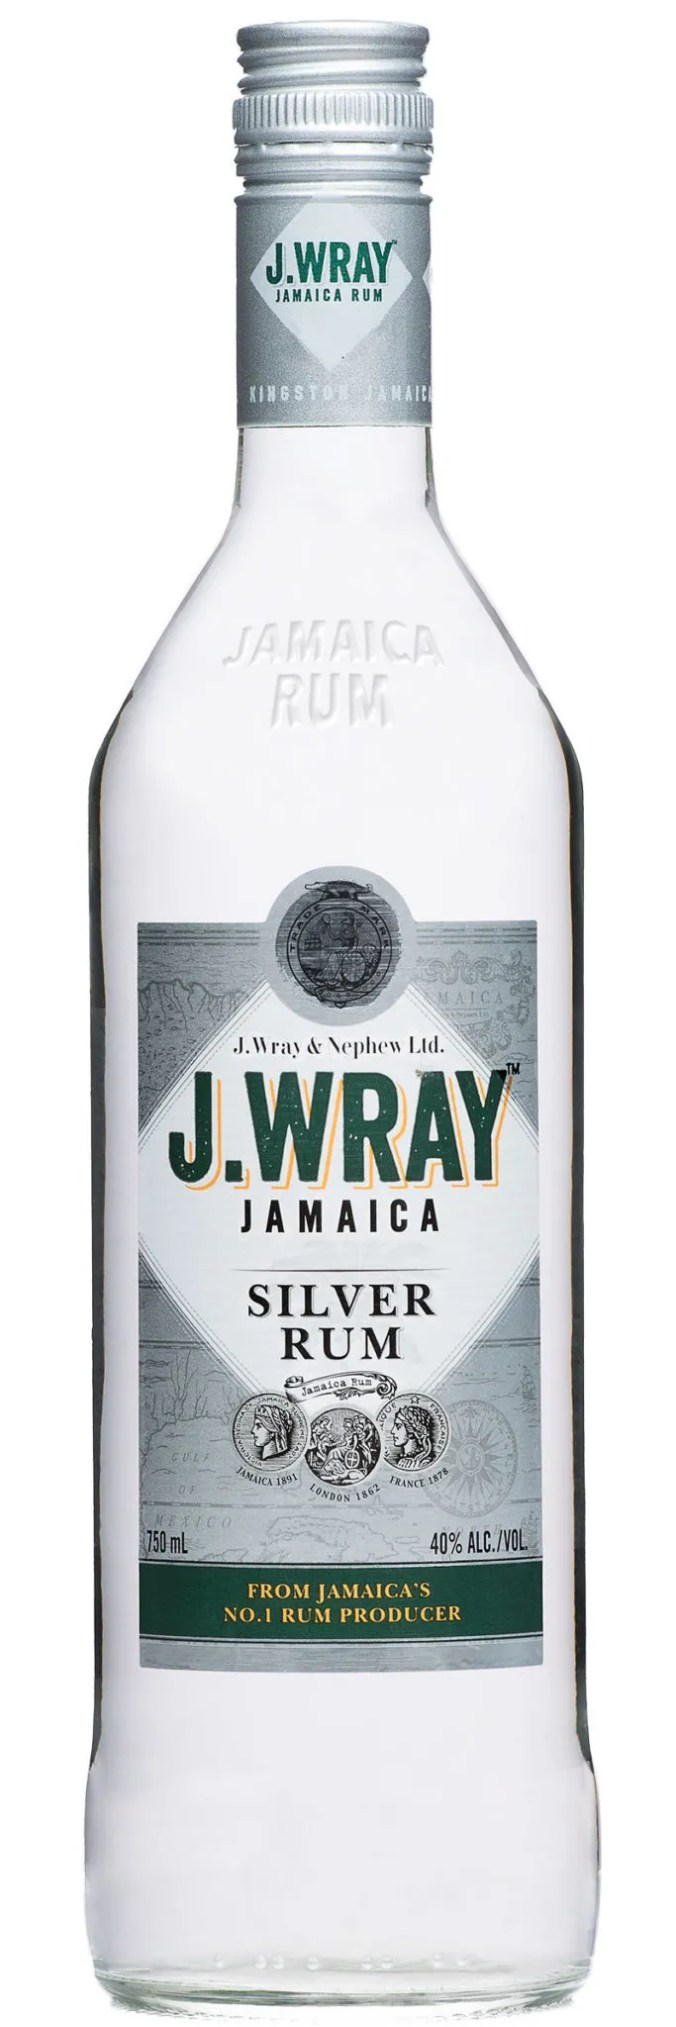 J.Wray Jamaica Rum Silver is a white rum that's aged and filtered slowly through special charcoal filters.